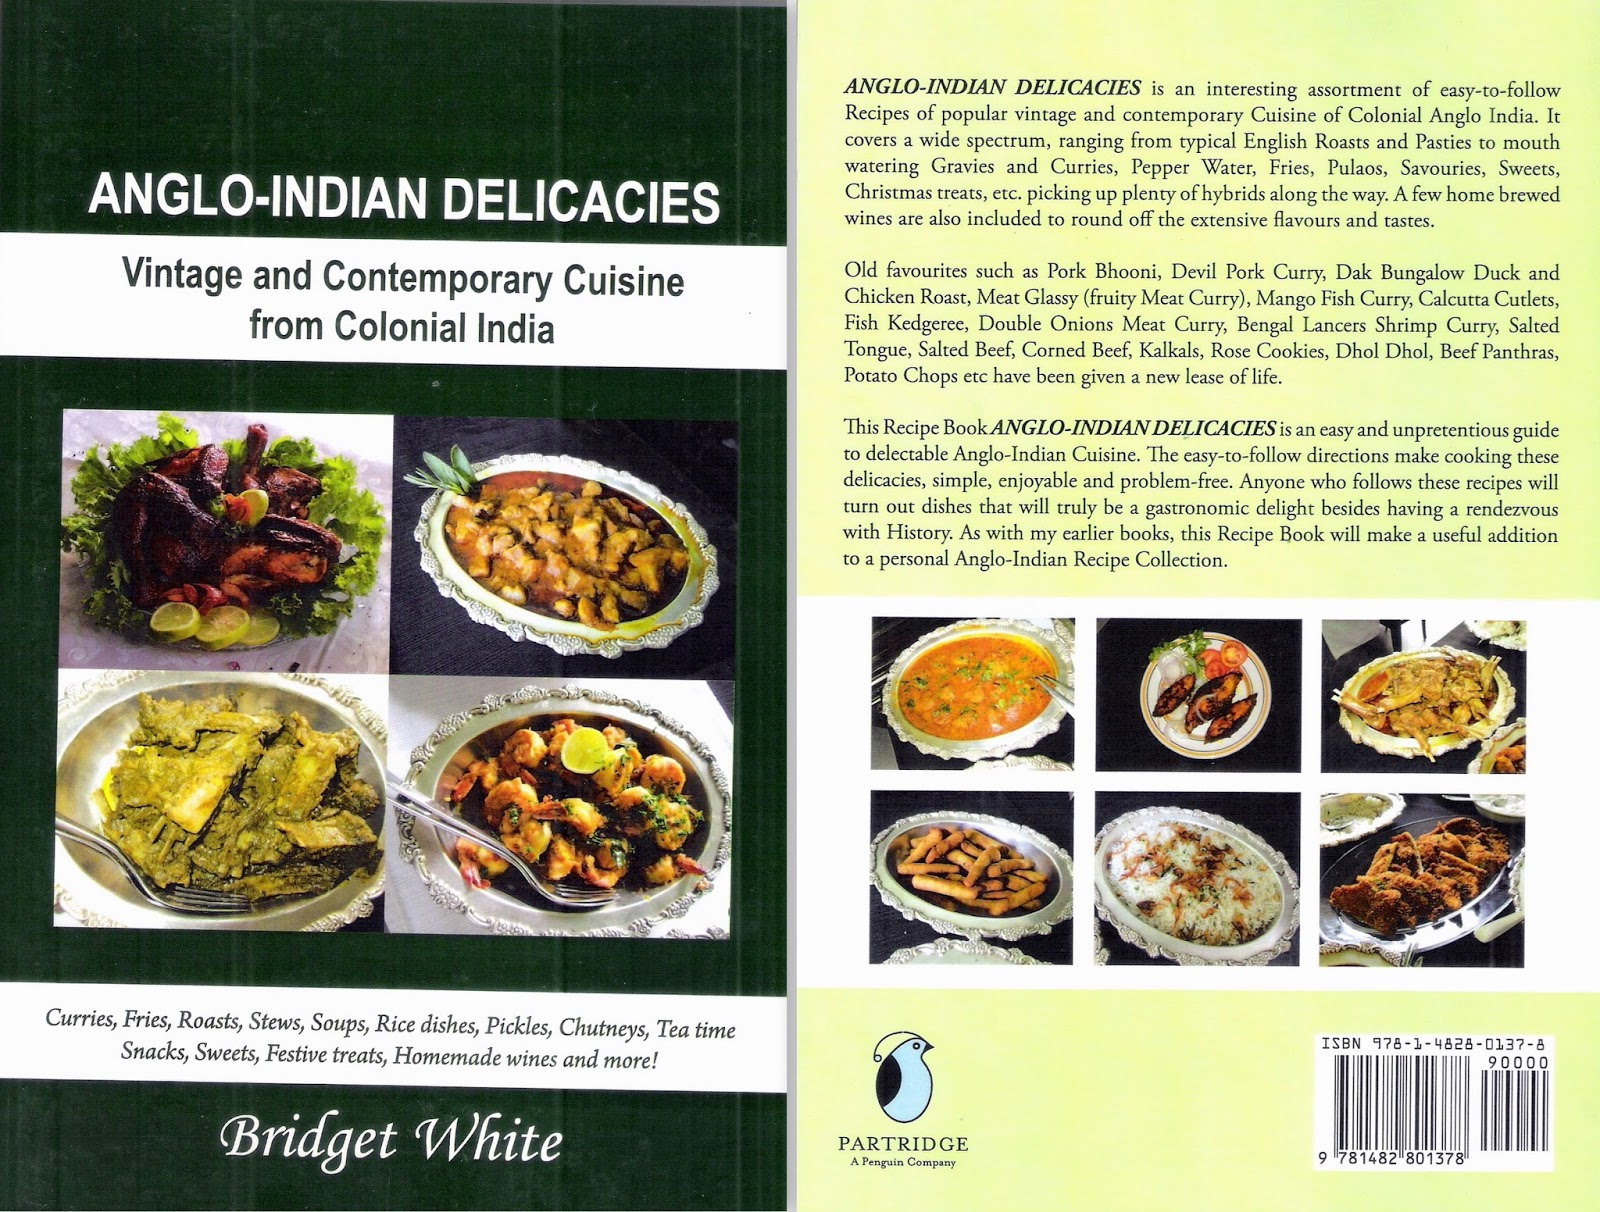 Colonial anglo indian recipes from the british raj by bridget white price per book india rs 45000 australia a3000 canada c3500 uk gbp 1500 usa 3500 forumfinder Image collections